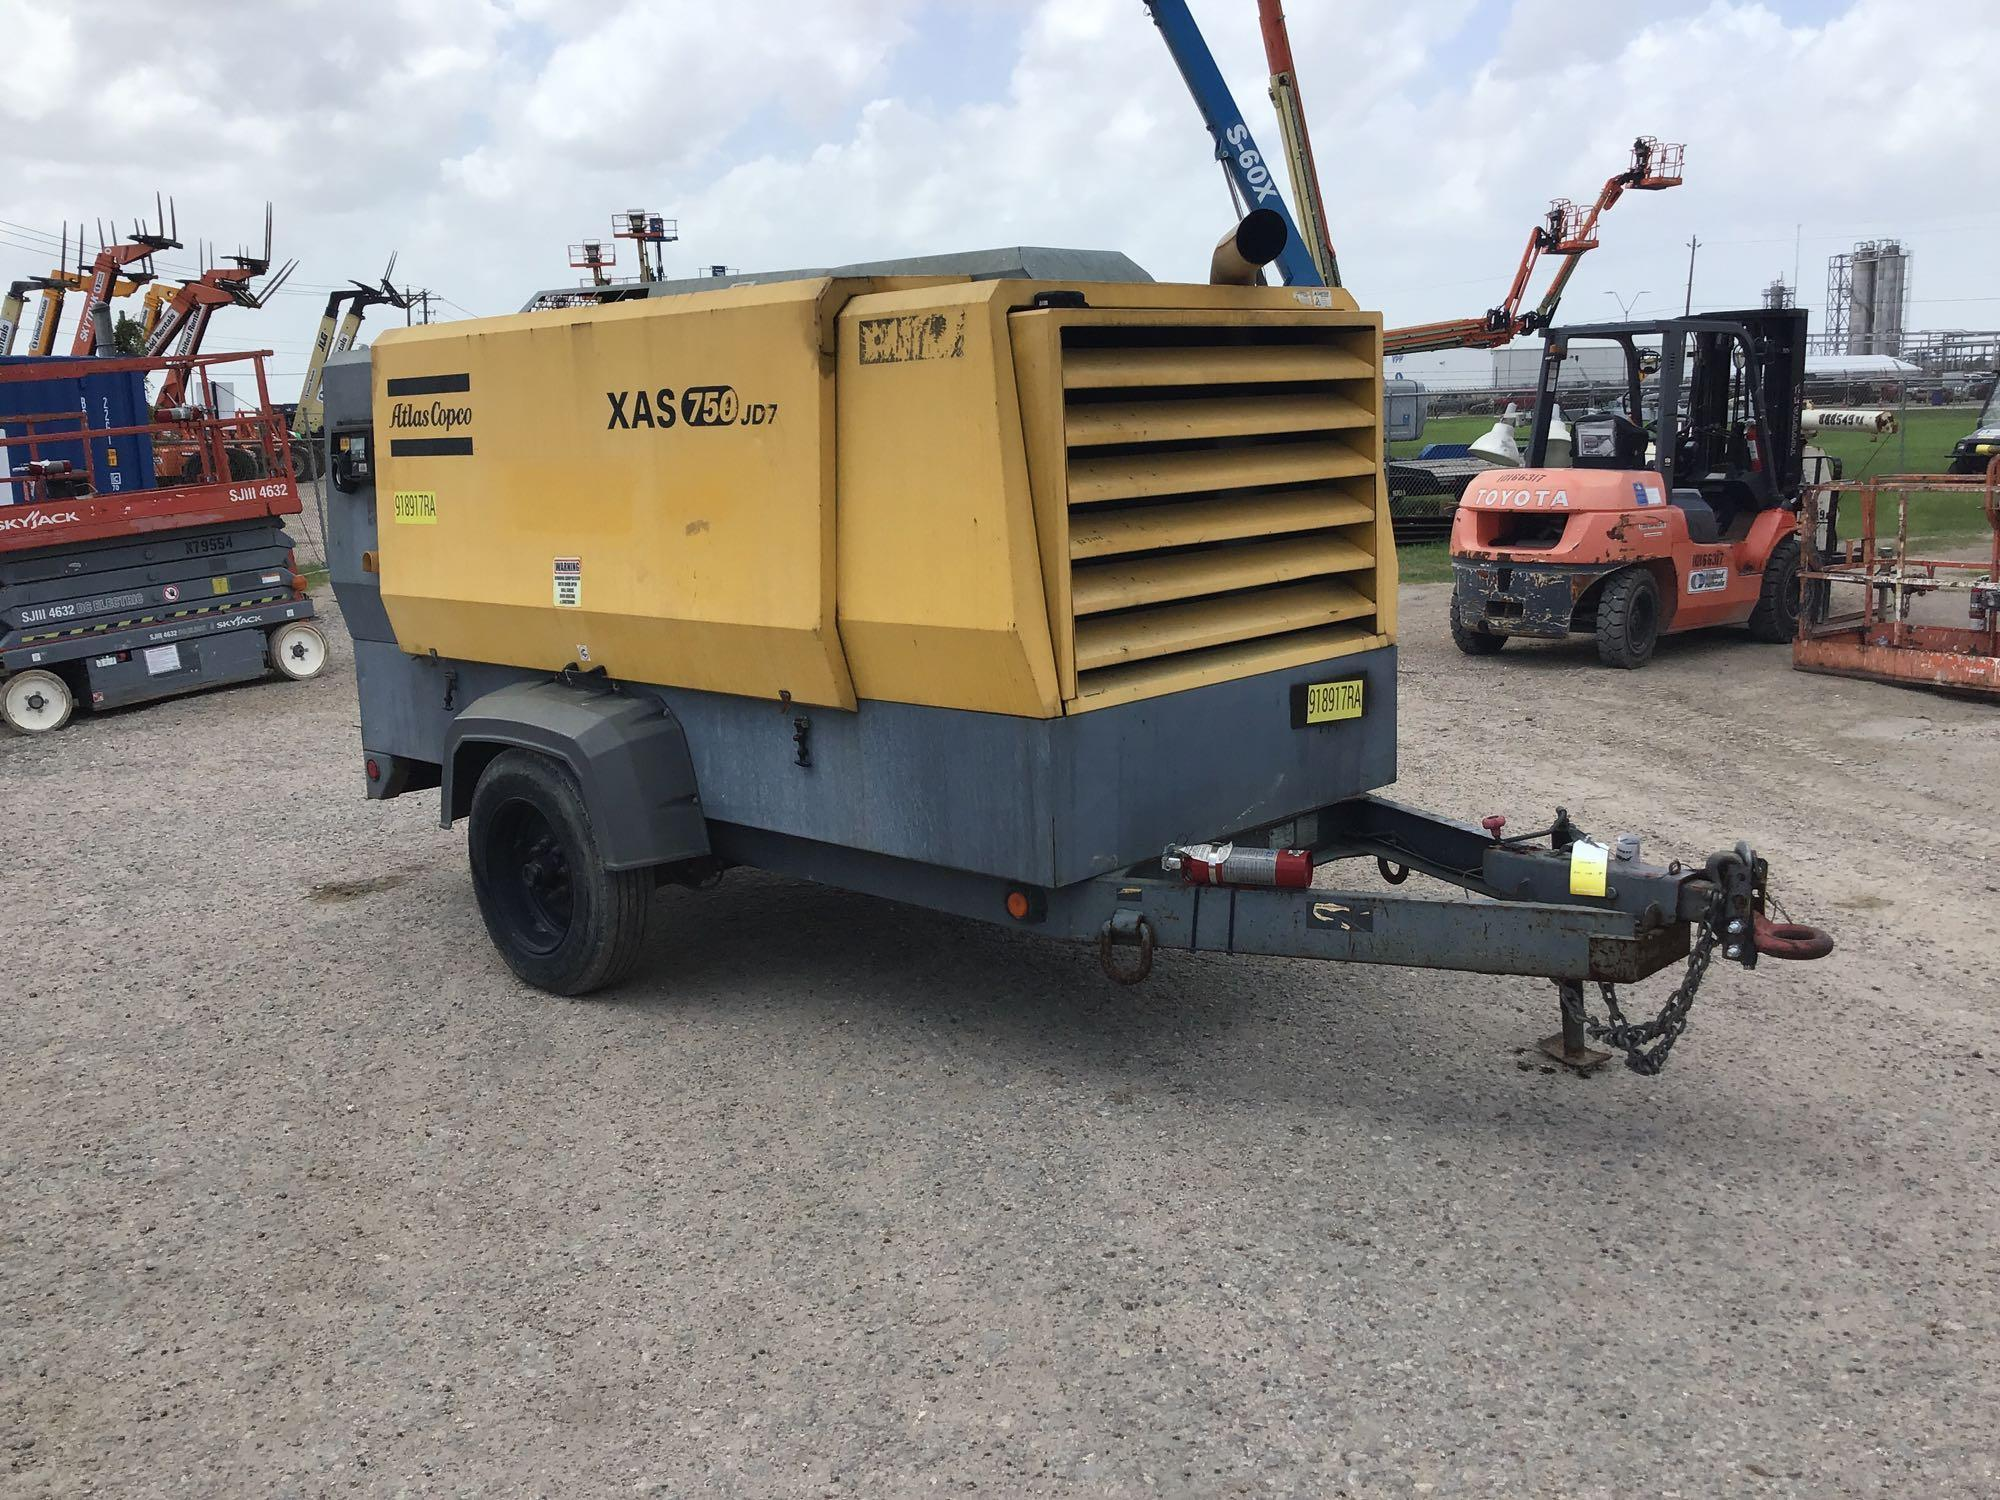 2012 ATLAS COPCO XAS750JDT3 AIR COMPRESSOR